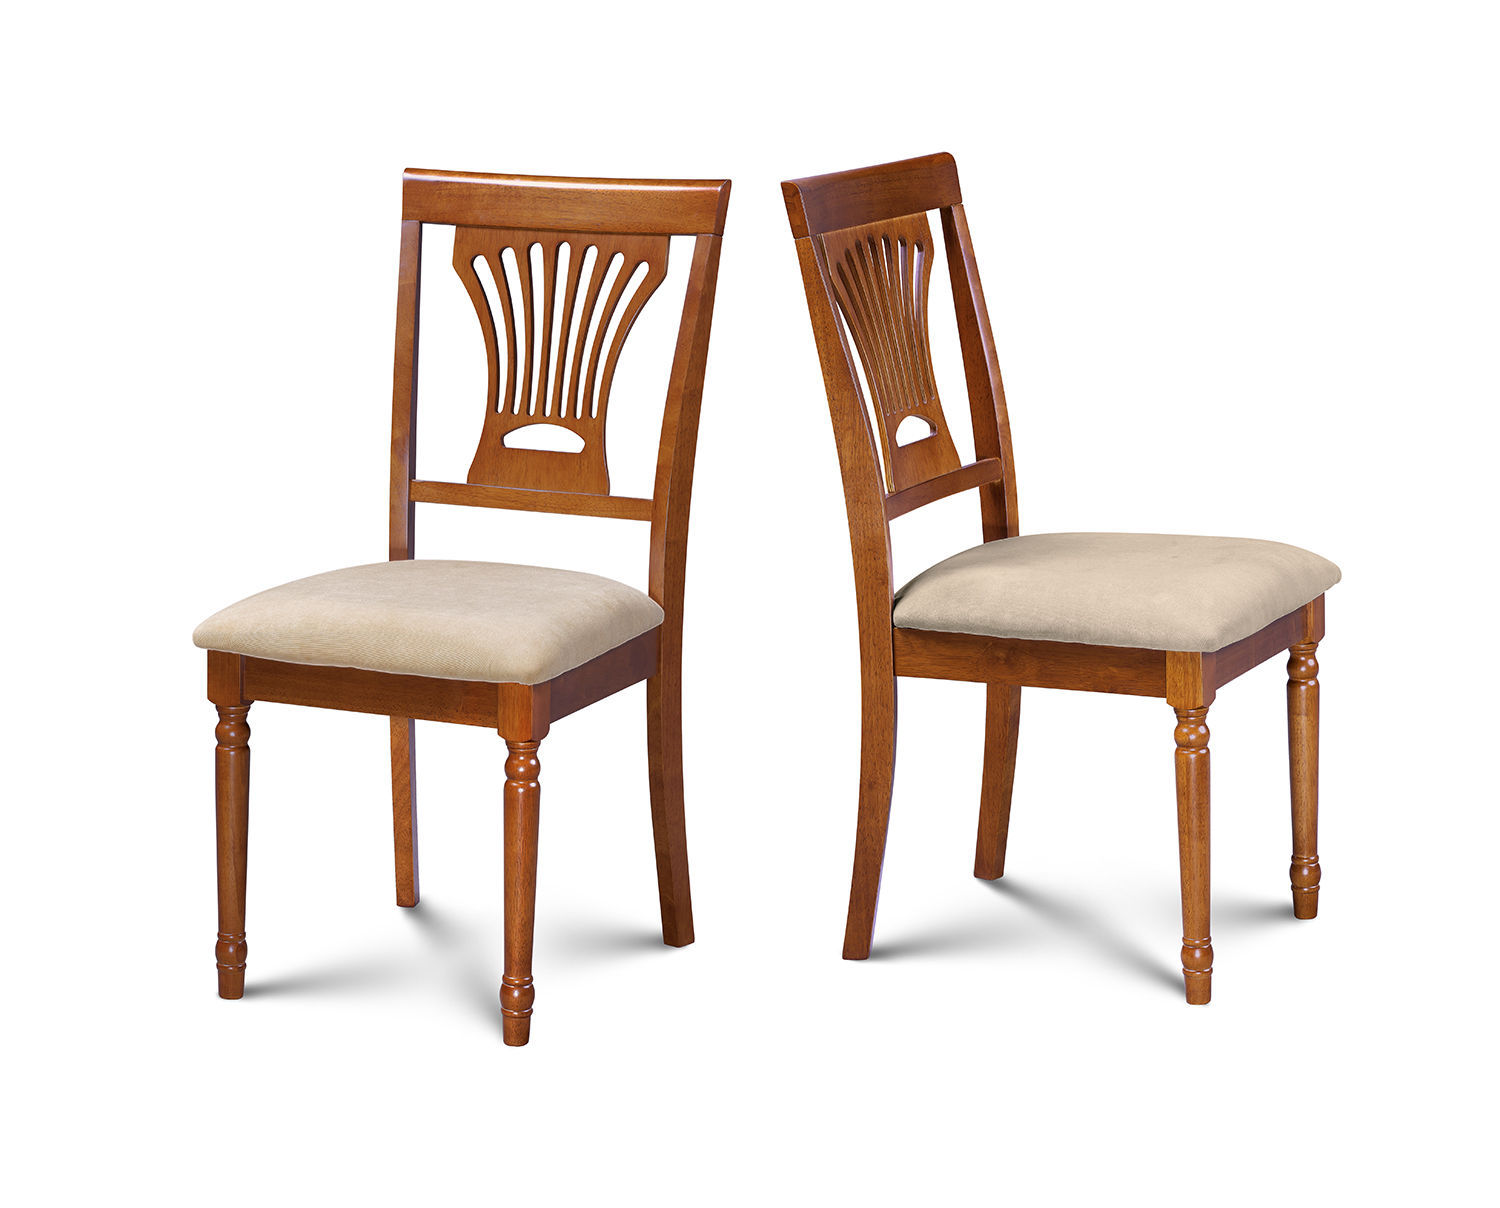 SET OF 2 DINING SIDE CHAIR WITH PADDED SEATS IN SADDLE BROWN